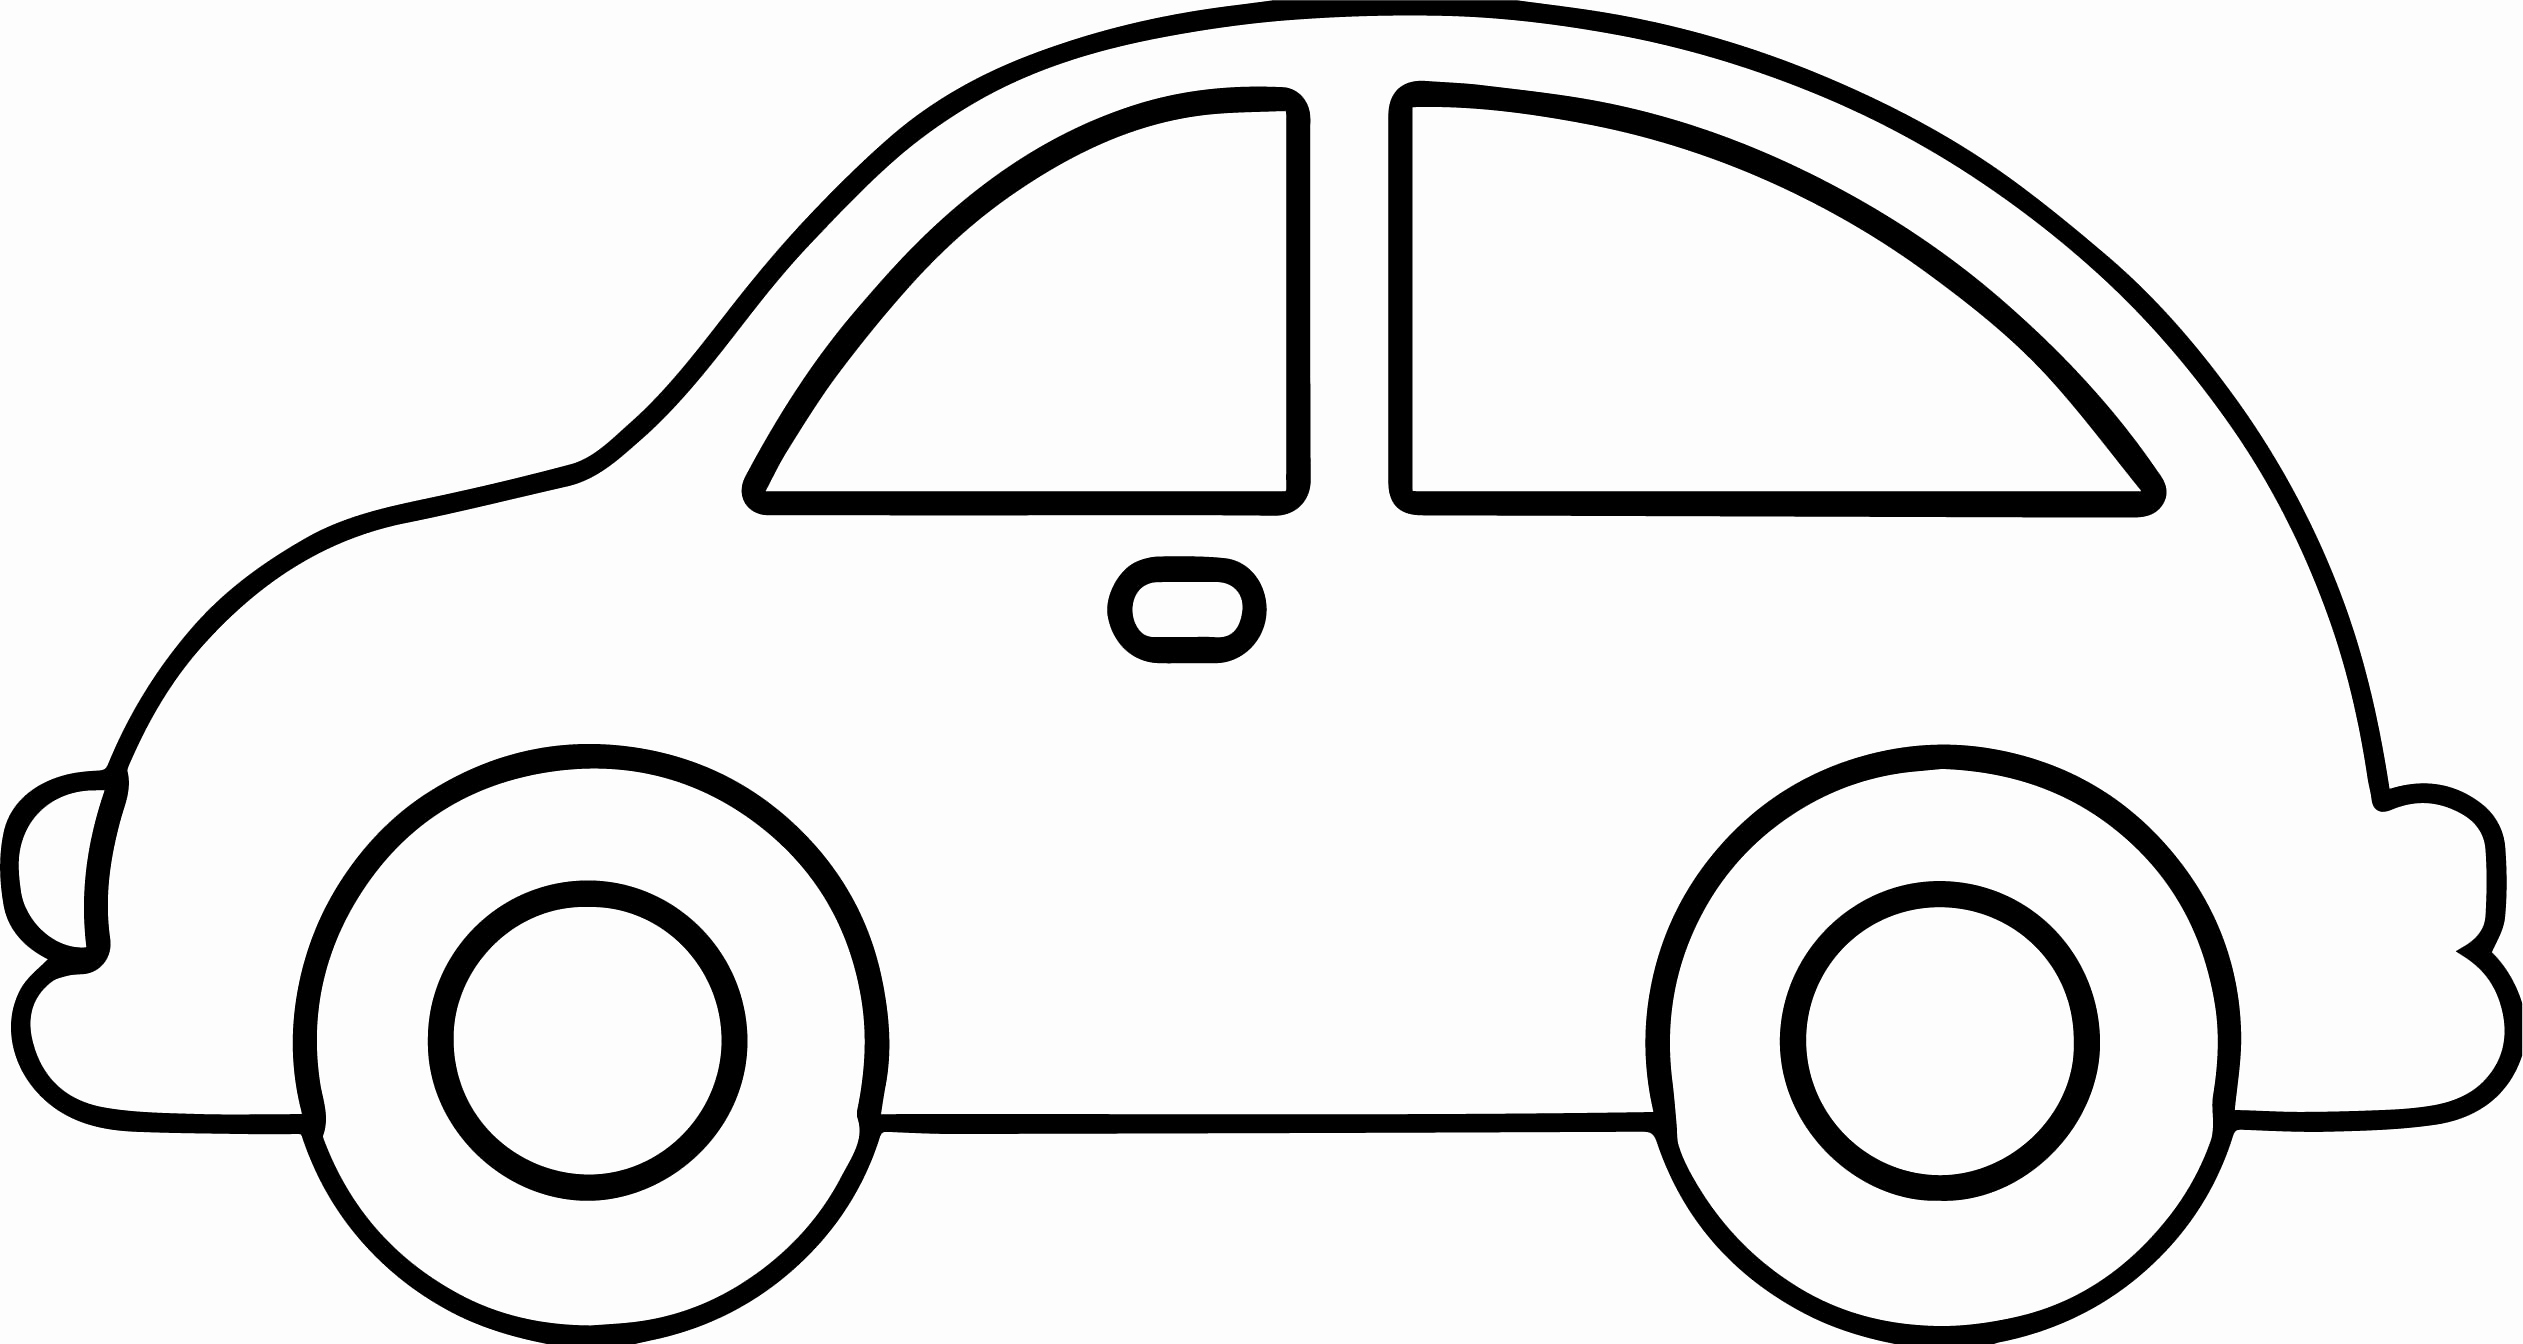 Clipart cars simple. Car images luxury red